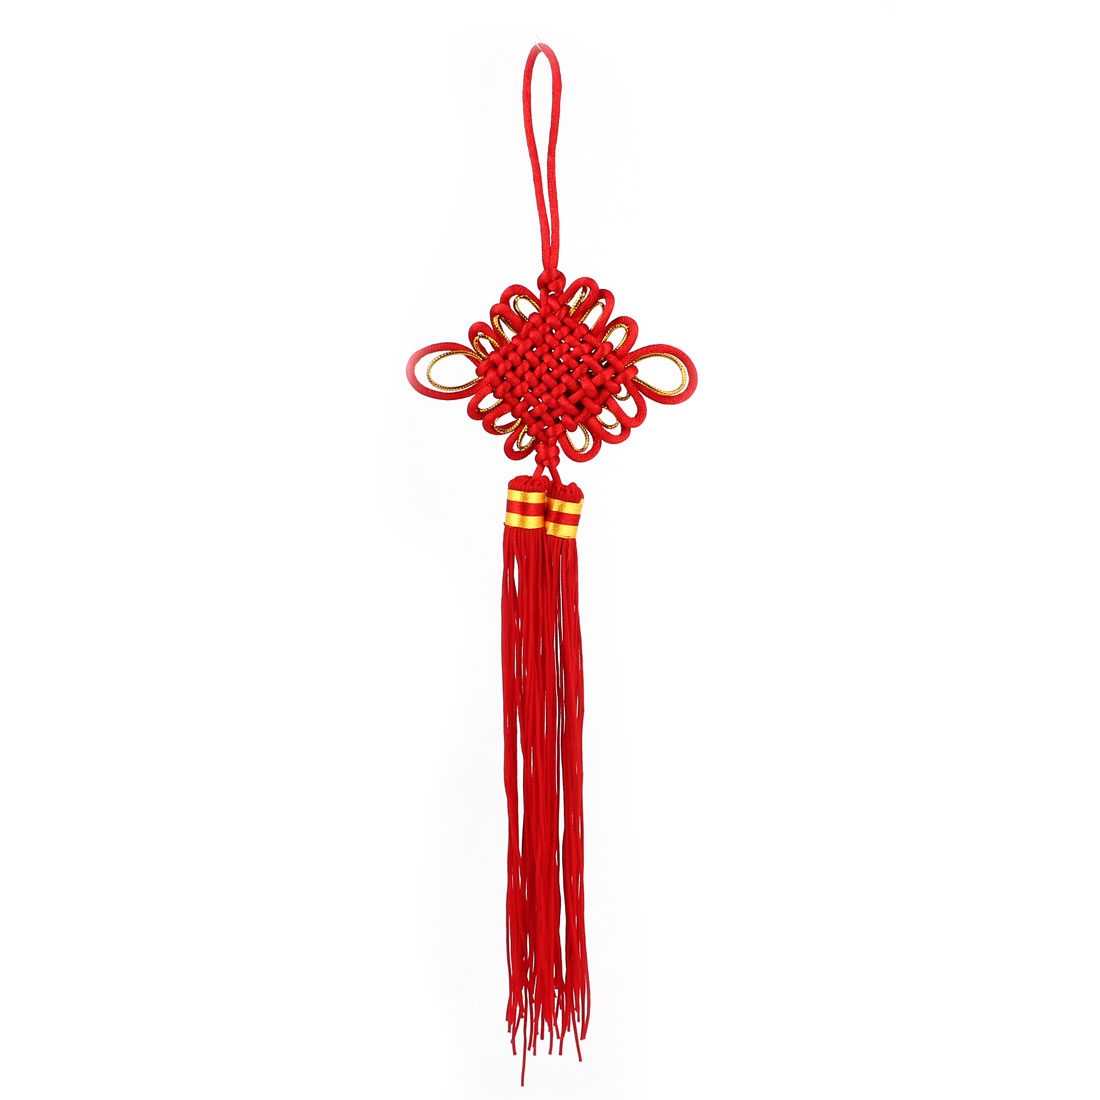 36cm Long Car Decor Dual Tassel Braided Red Gold Tone Nylon Chinese Knot